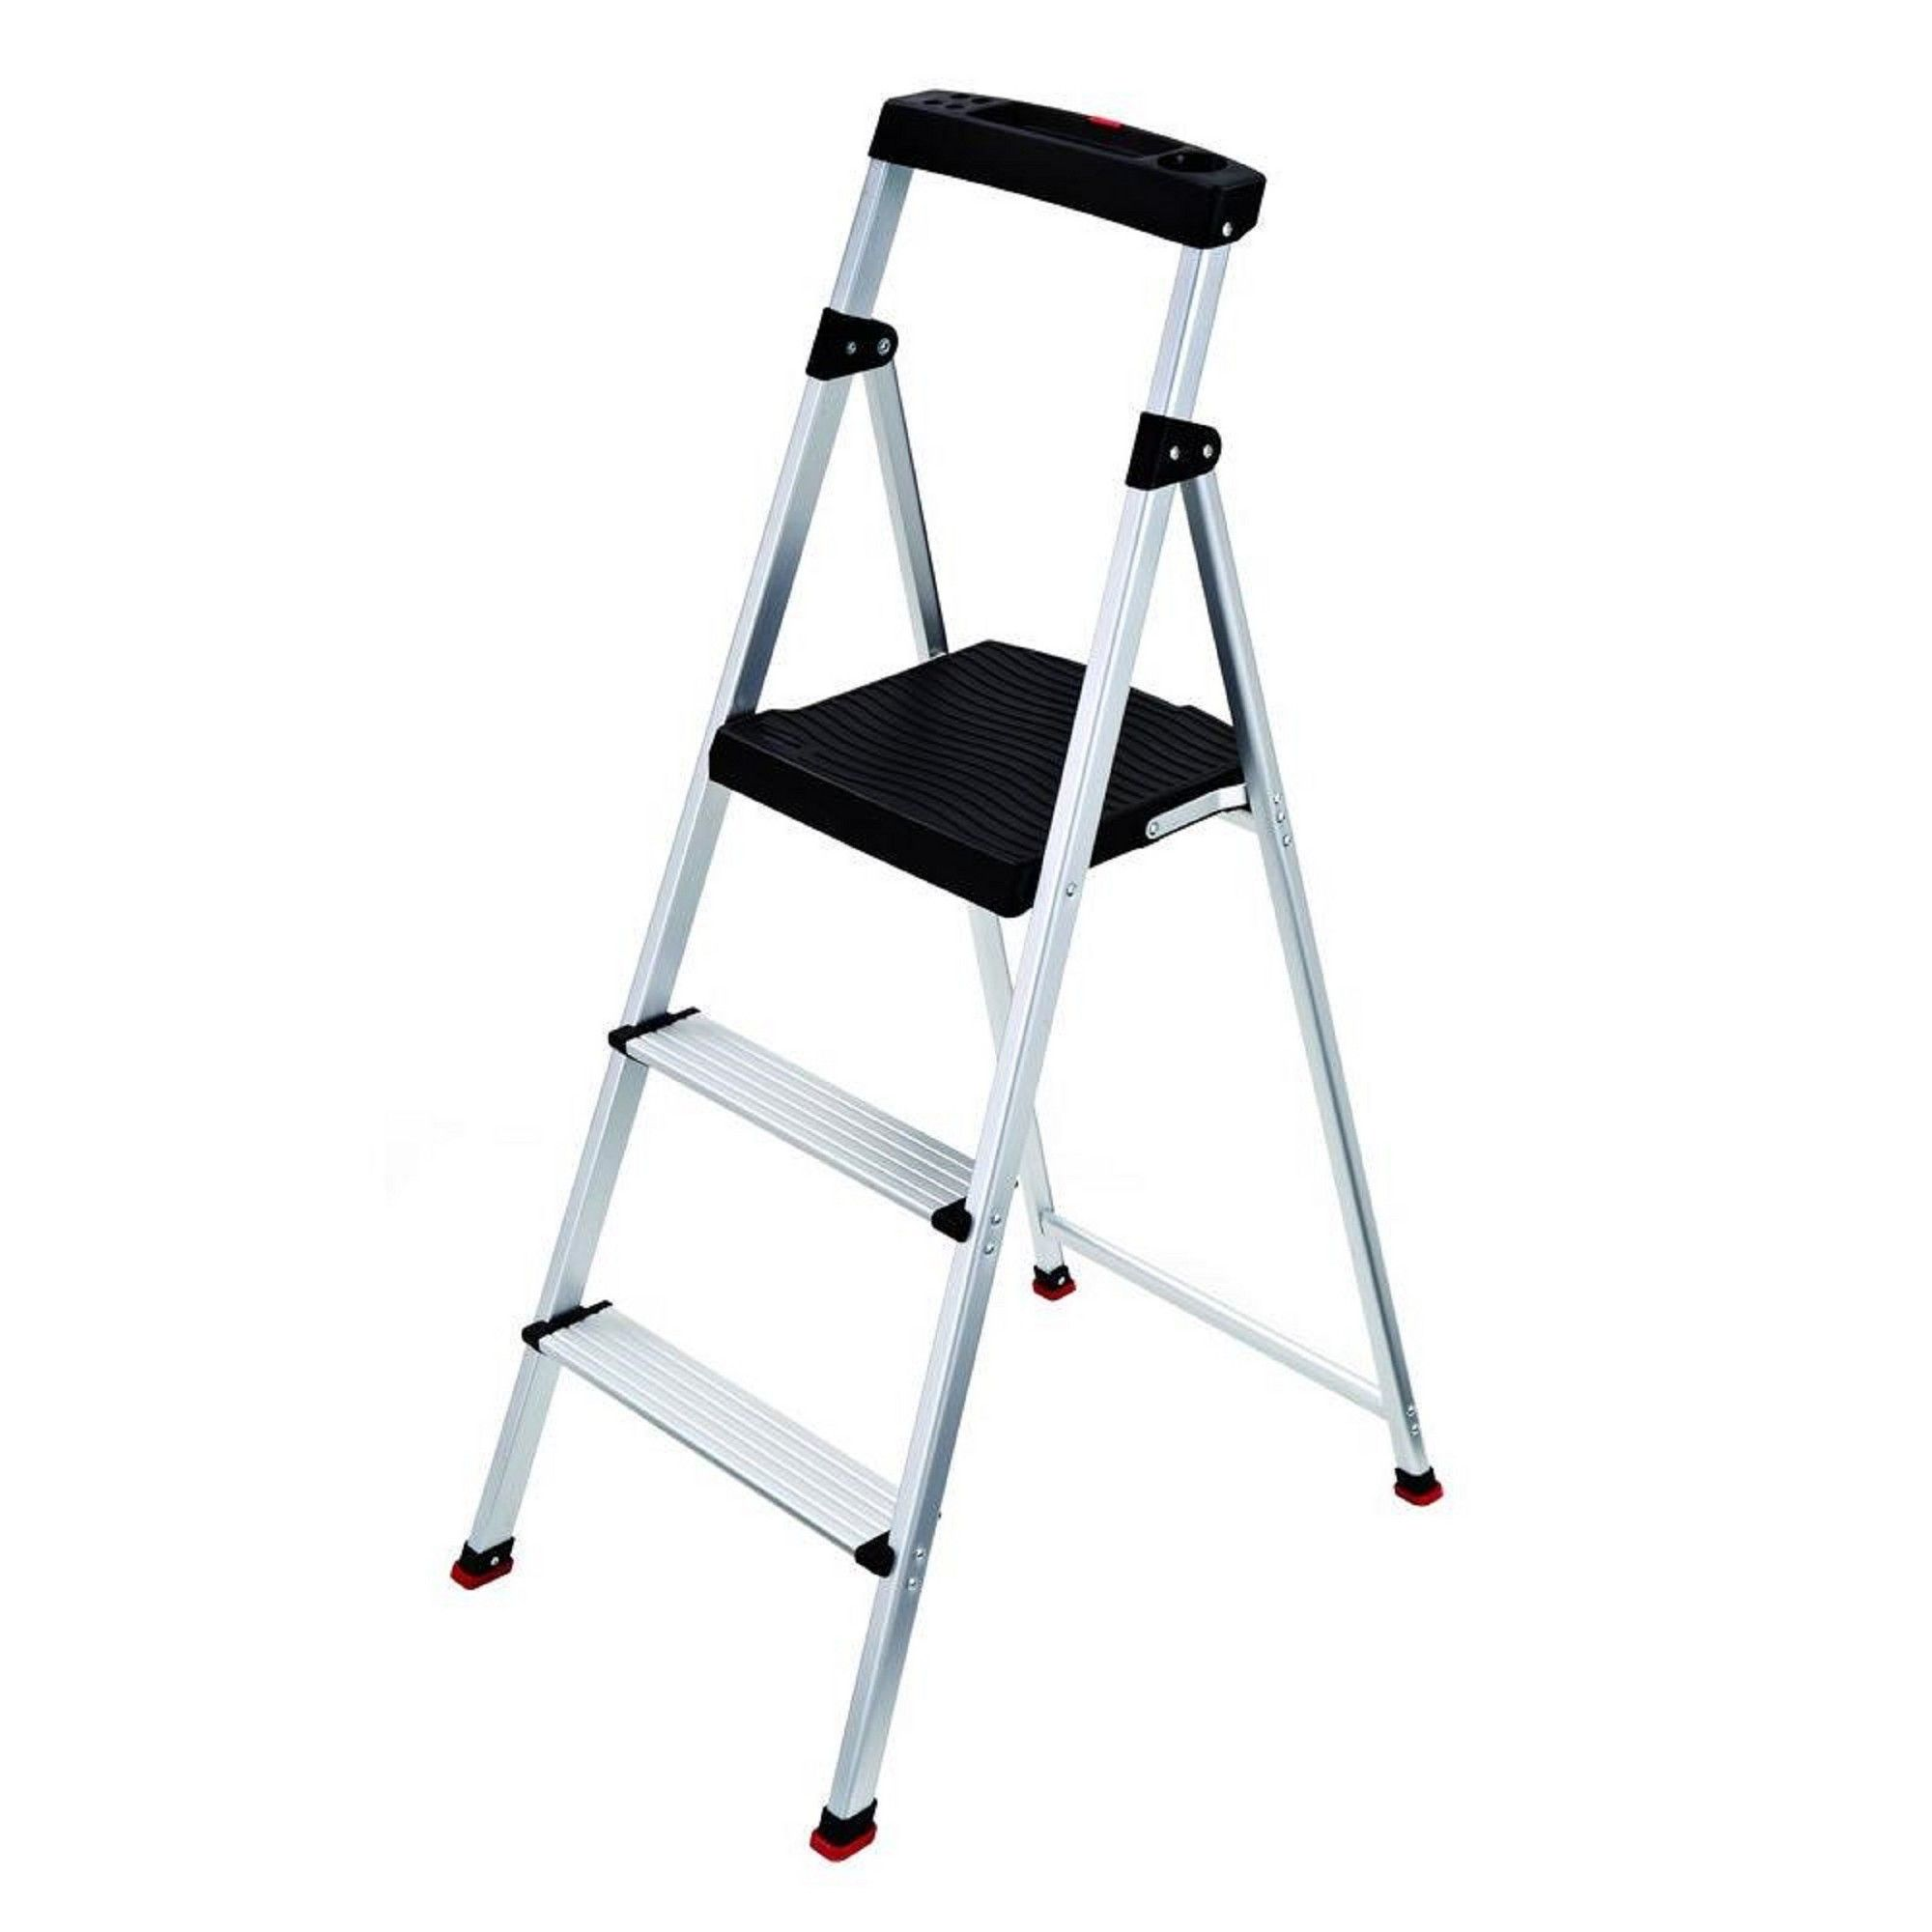 Groovy Rubbermaid Lightweight Aluminum Step Stool With Project Top Machost Co Dining Chair Design Ideas Machostcouk